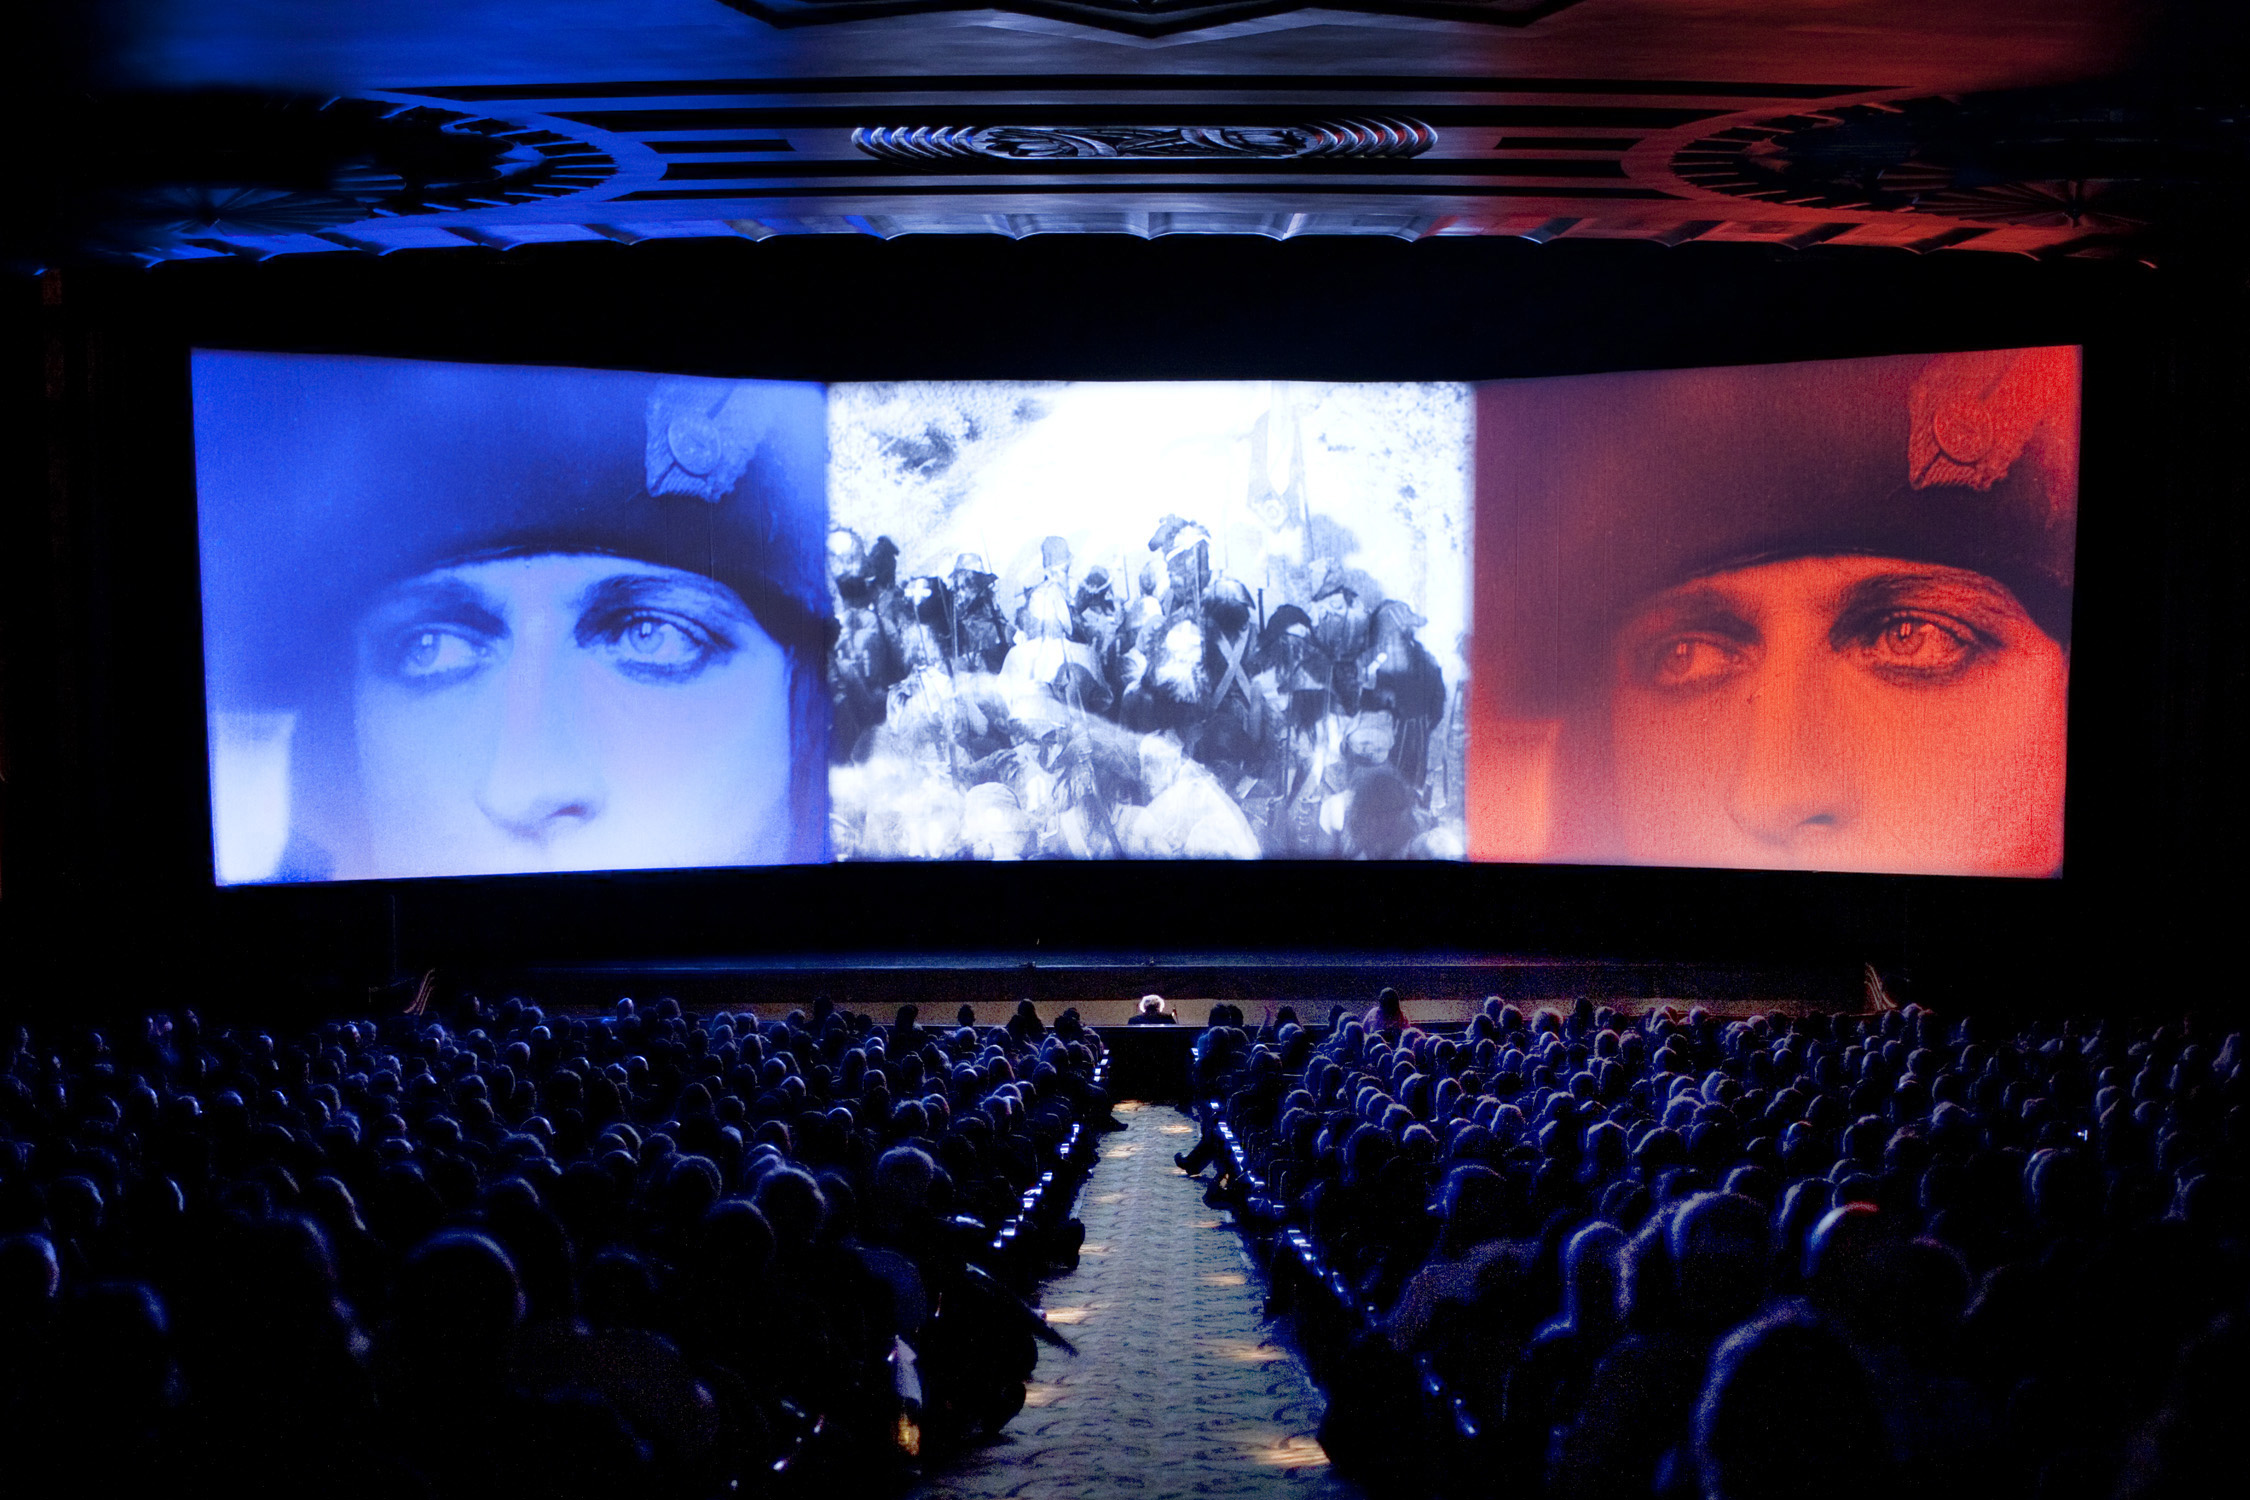 Napoléon (1927) triptych finale at Paramount Theatre, Oakland, during 2012 San Francisco Silent Film Festival